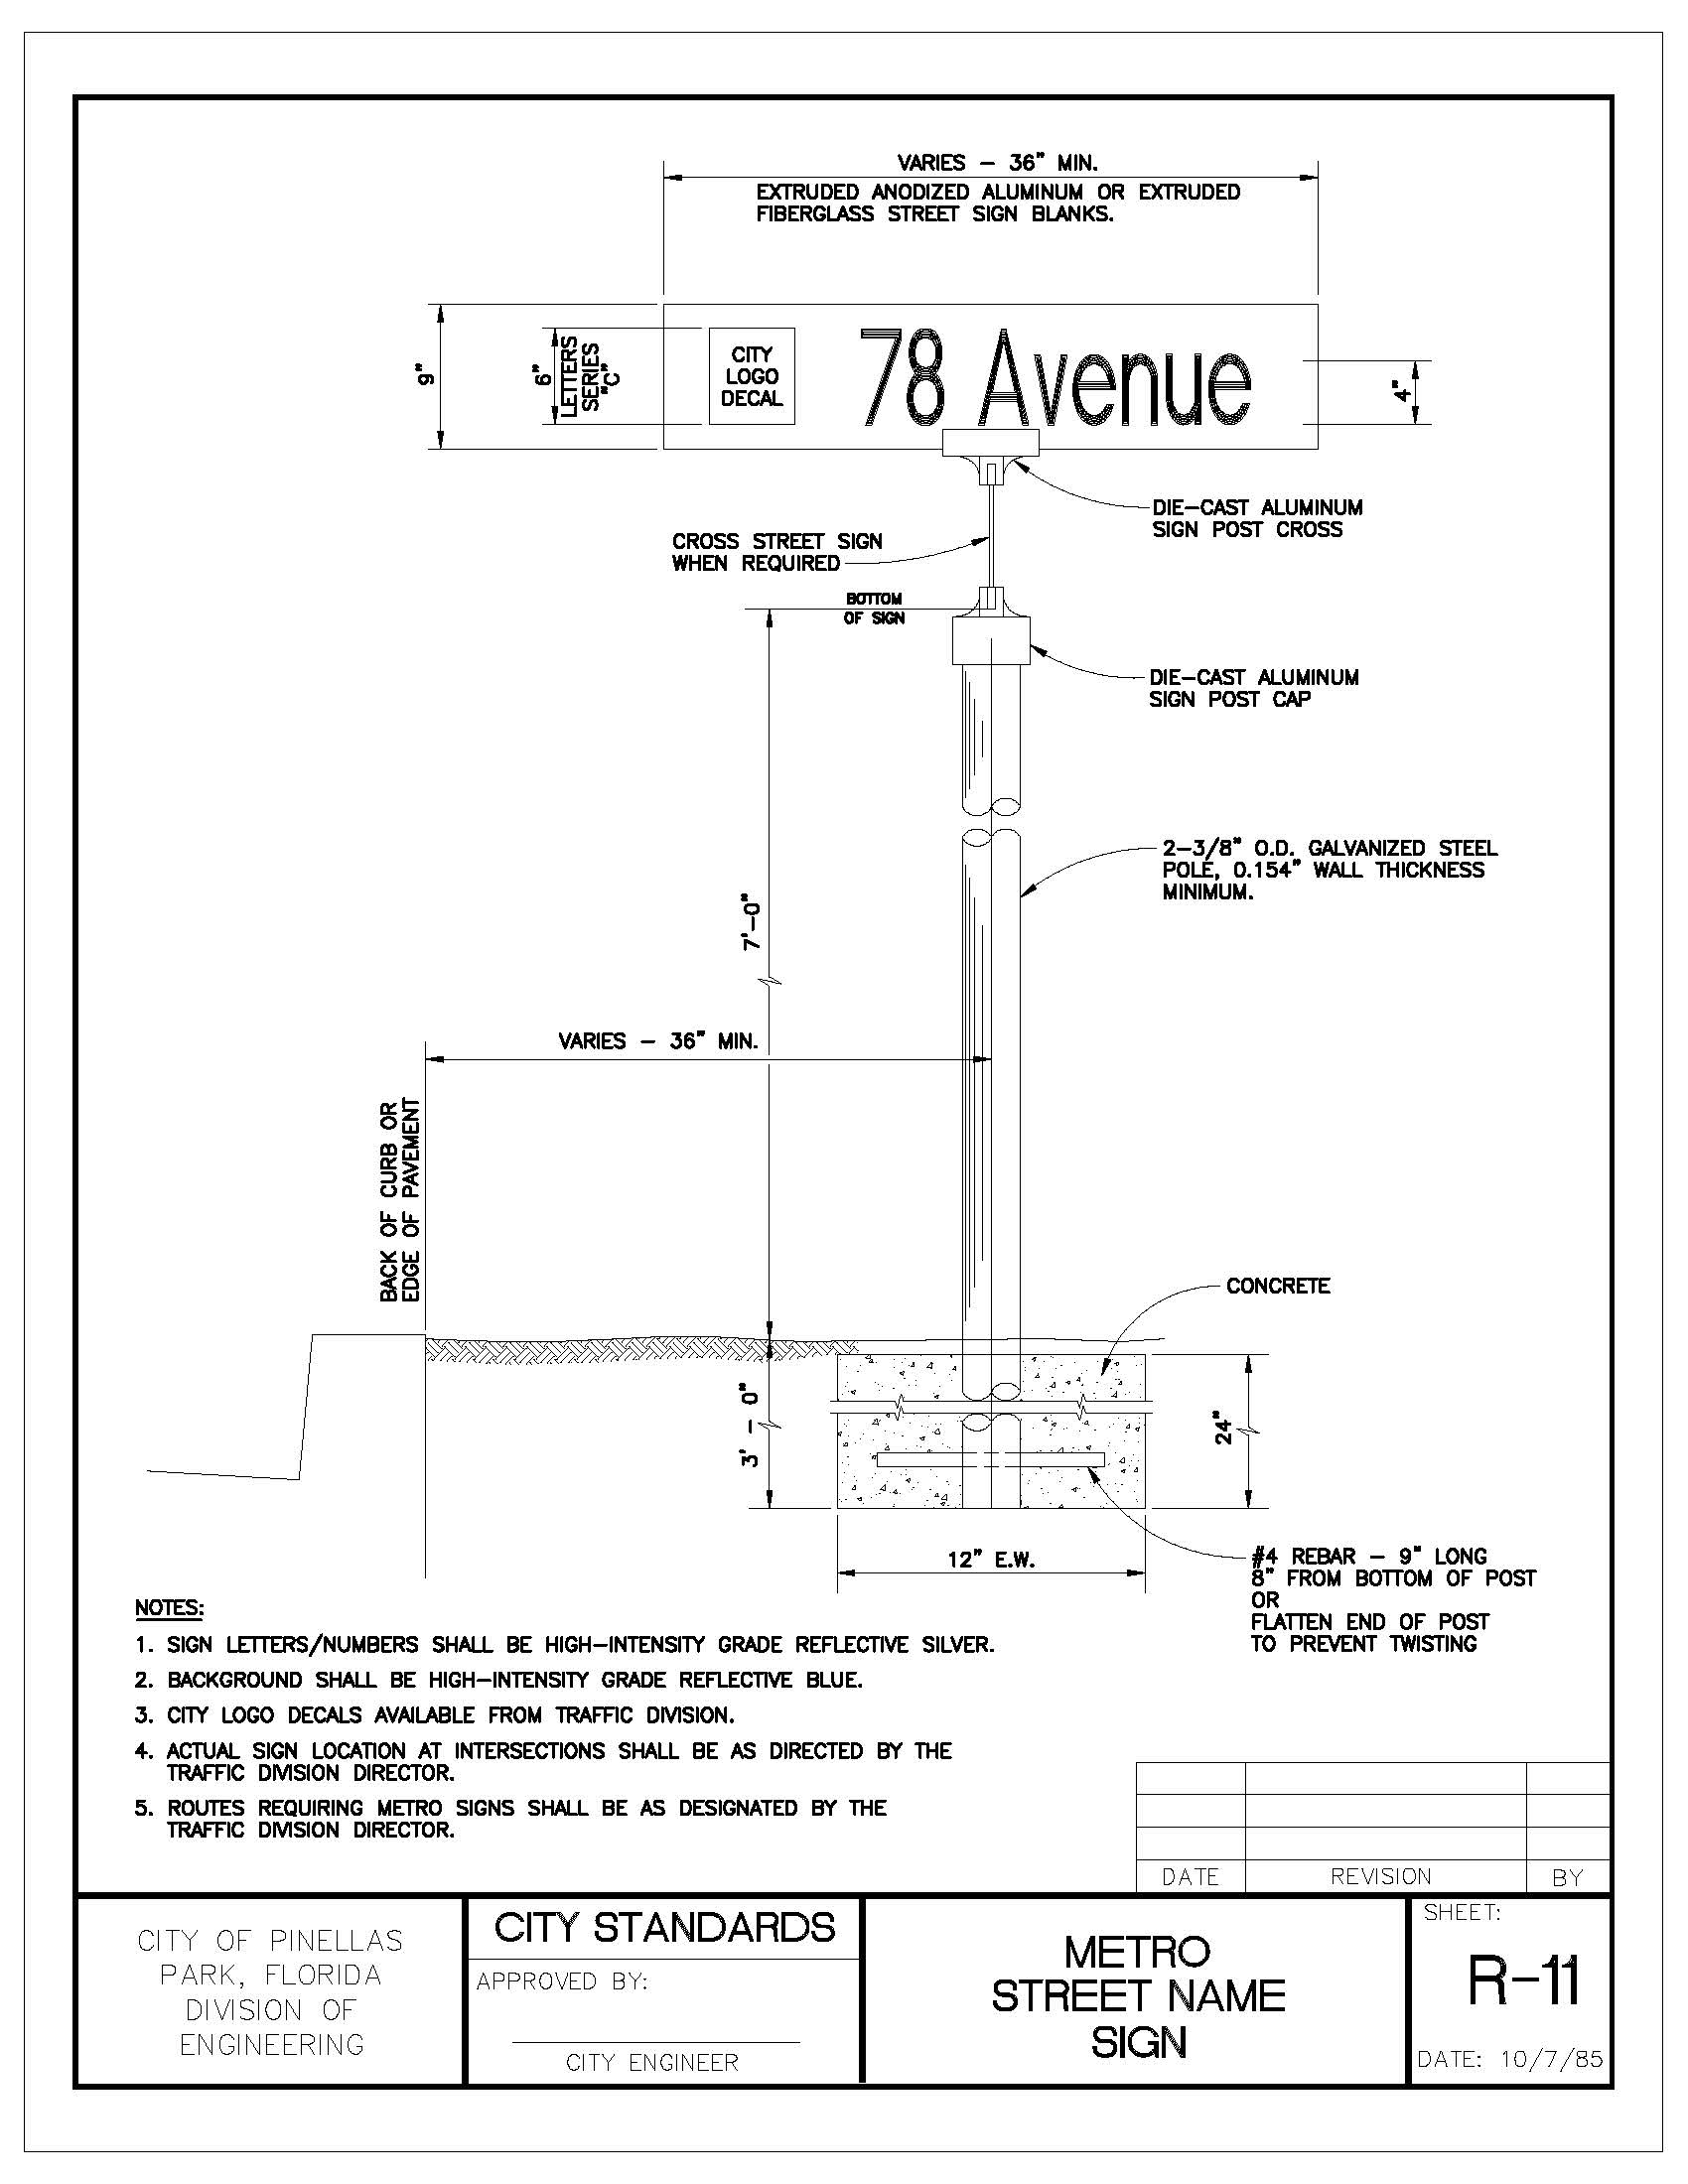 Engineering Manual v5_201908121127291138_Page_048 metro street name sign